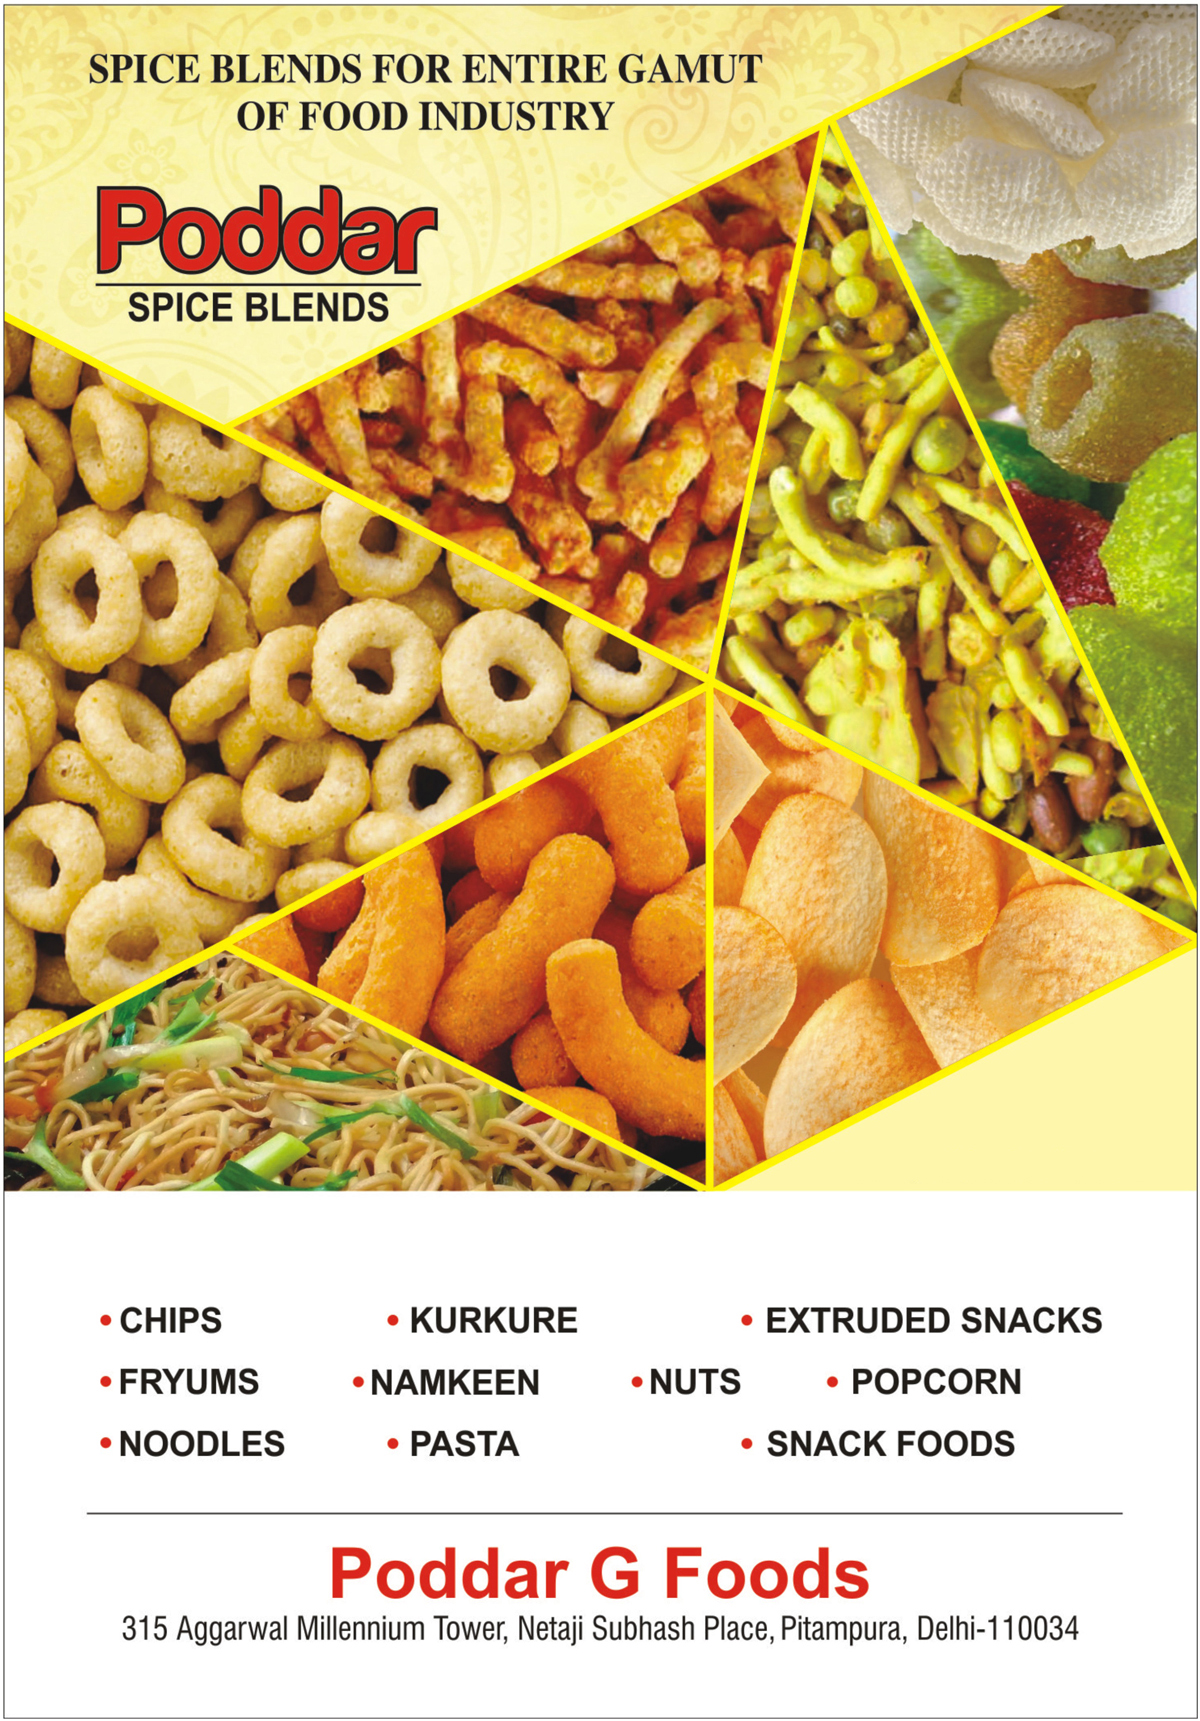 Spices, Masala, Garam Masala, Paneer Masala, Meat Masala, Pav Bhaji Masala, Sambar Masala, Sambhar Masala, Chana Masala, Chole Masala, Food Spice Blends, Food Seasonings, Pasta Seasonings Noodles Seasonings, Potato Chips Seasonings, Potato Wafers Seasonings, Namkeen Seasonings, Potato Pellets Seasonings, Soups Seasonings, Oats Seasonings, Corn Rings Seasonings, Puffs Seasonings, Sticks Seasonings, Bread Mixes Seasonings, Flavoured Tea Seasonings, Popcorn Seasonings, Biscuit Seasonings, Aloo Chips Seasonings, Aloo Wafers Seeasonings, Corn Puffs Seasonings, Cheese Balls Seasonings, Extruded Fried Snack Food Seasonings, Crackers Seasonings, Frymes Seasonings, Namkeen Seasonings, Aloo Bhujia Seasonings, Instant Noodles Seasonings, Pasta Seasonings, Khatta Meetha Spice Blends, Pudina Chatni Spice Blends, Tangy Tomato Spice Blends, Manchurian Spice Blends, Salsa Spice Blends, Cocktail Spice Blends, Tangi Spicy Spice Blends, Bar Be Que Spice Blends, Chilly Garlic Spice Blends, Chaat Papari Spice Blends, Noodle Seasonings Spice Blends, Chilly Chatka Spice Blends, Aloo Bhujia Spice Blends, Tandoori Spice Blends, Achari Spice Blends, Punjabi Spice Blends, Chilli Tomato Spice Blends, Chilli Chatka Spice Blends,Seasonings, Blended spice seasonings, RTE Snack Foods, Extruded Snack Food, Aloo Chips, Namkeen, Instant Noodles, Potato Namkeen, Spice Blends for Ready to Eat Snacks, Spice Blends for Chips, Spice Blends for Fried Snacks, Spice Blends for Namkeens, Spice Blends for Extruded Snacks, Spice Blends for Fryums, Spice Blends for Noodles, Spice Blends for Potato Chips, Spice Blends for Corn Rings, Spice Blends for Crackers, Spice Blends for Cheese Balls, Spice Blends for Kurkure, Spice Blends for Popcorn, Spice Blends